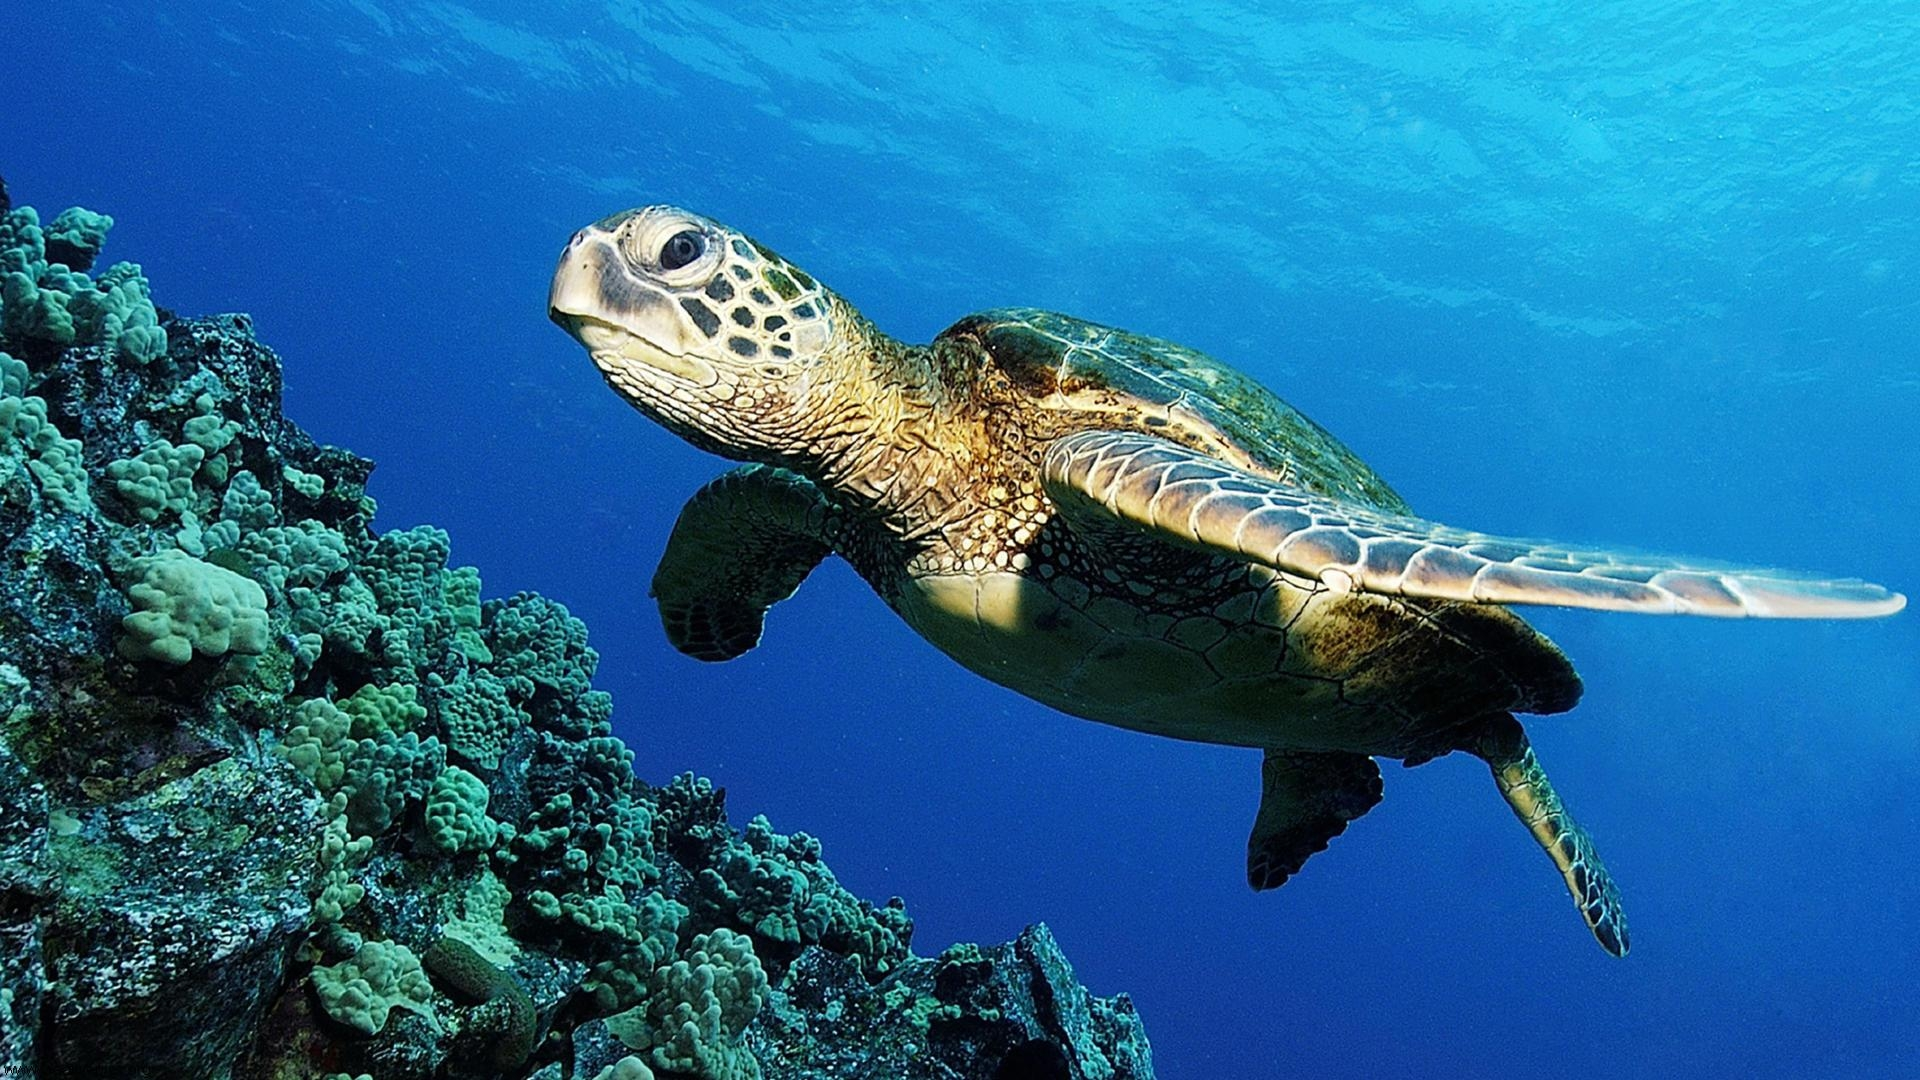 Turtle Backgrounds Download 1920x1080